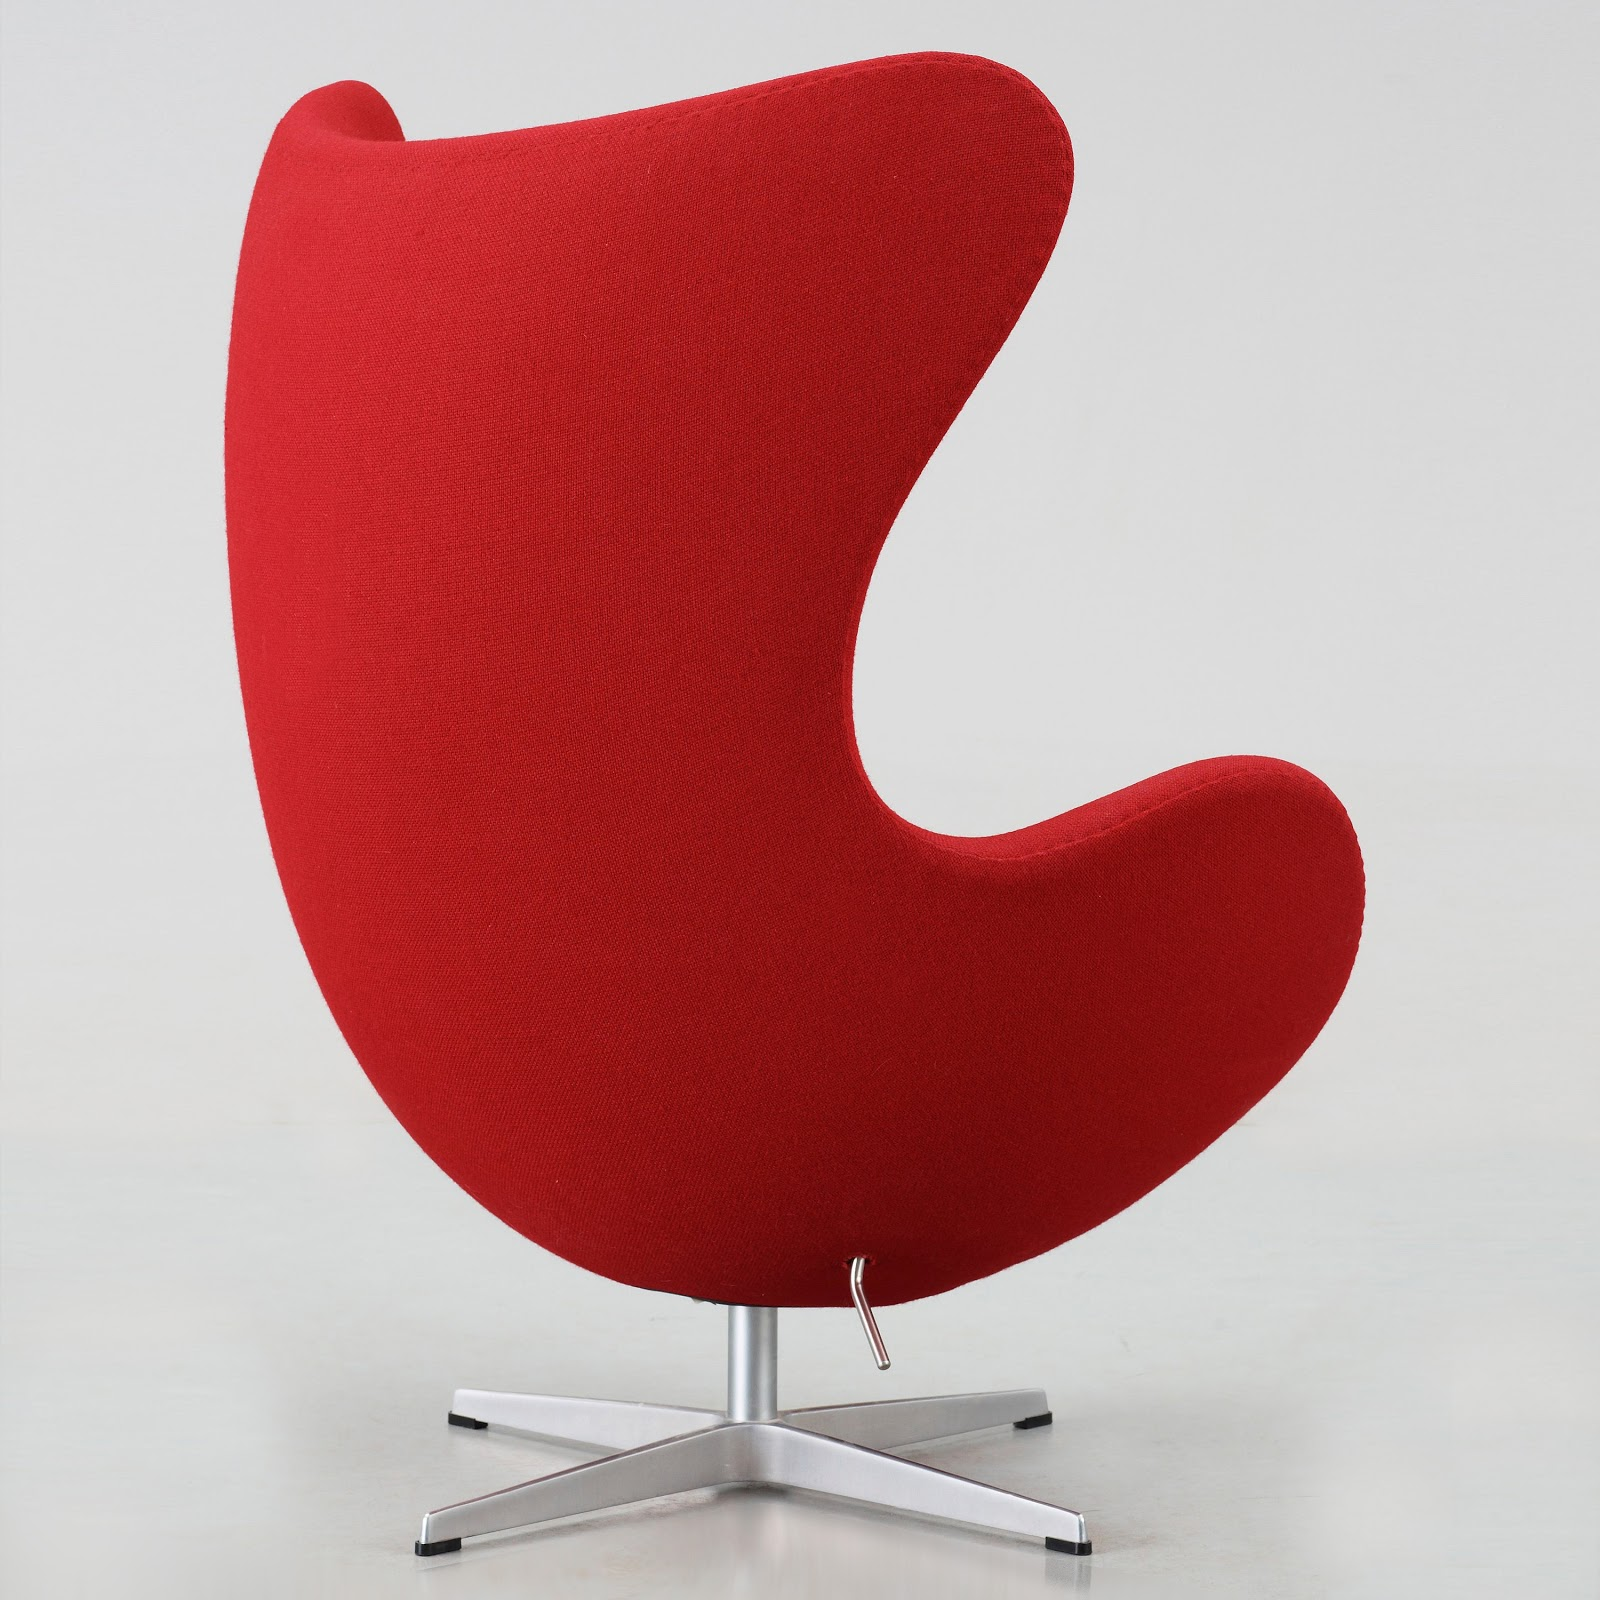 Egg chair di fritz hansen poltrone chaise longue for Egg chair original